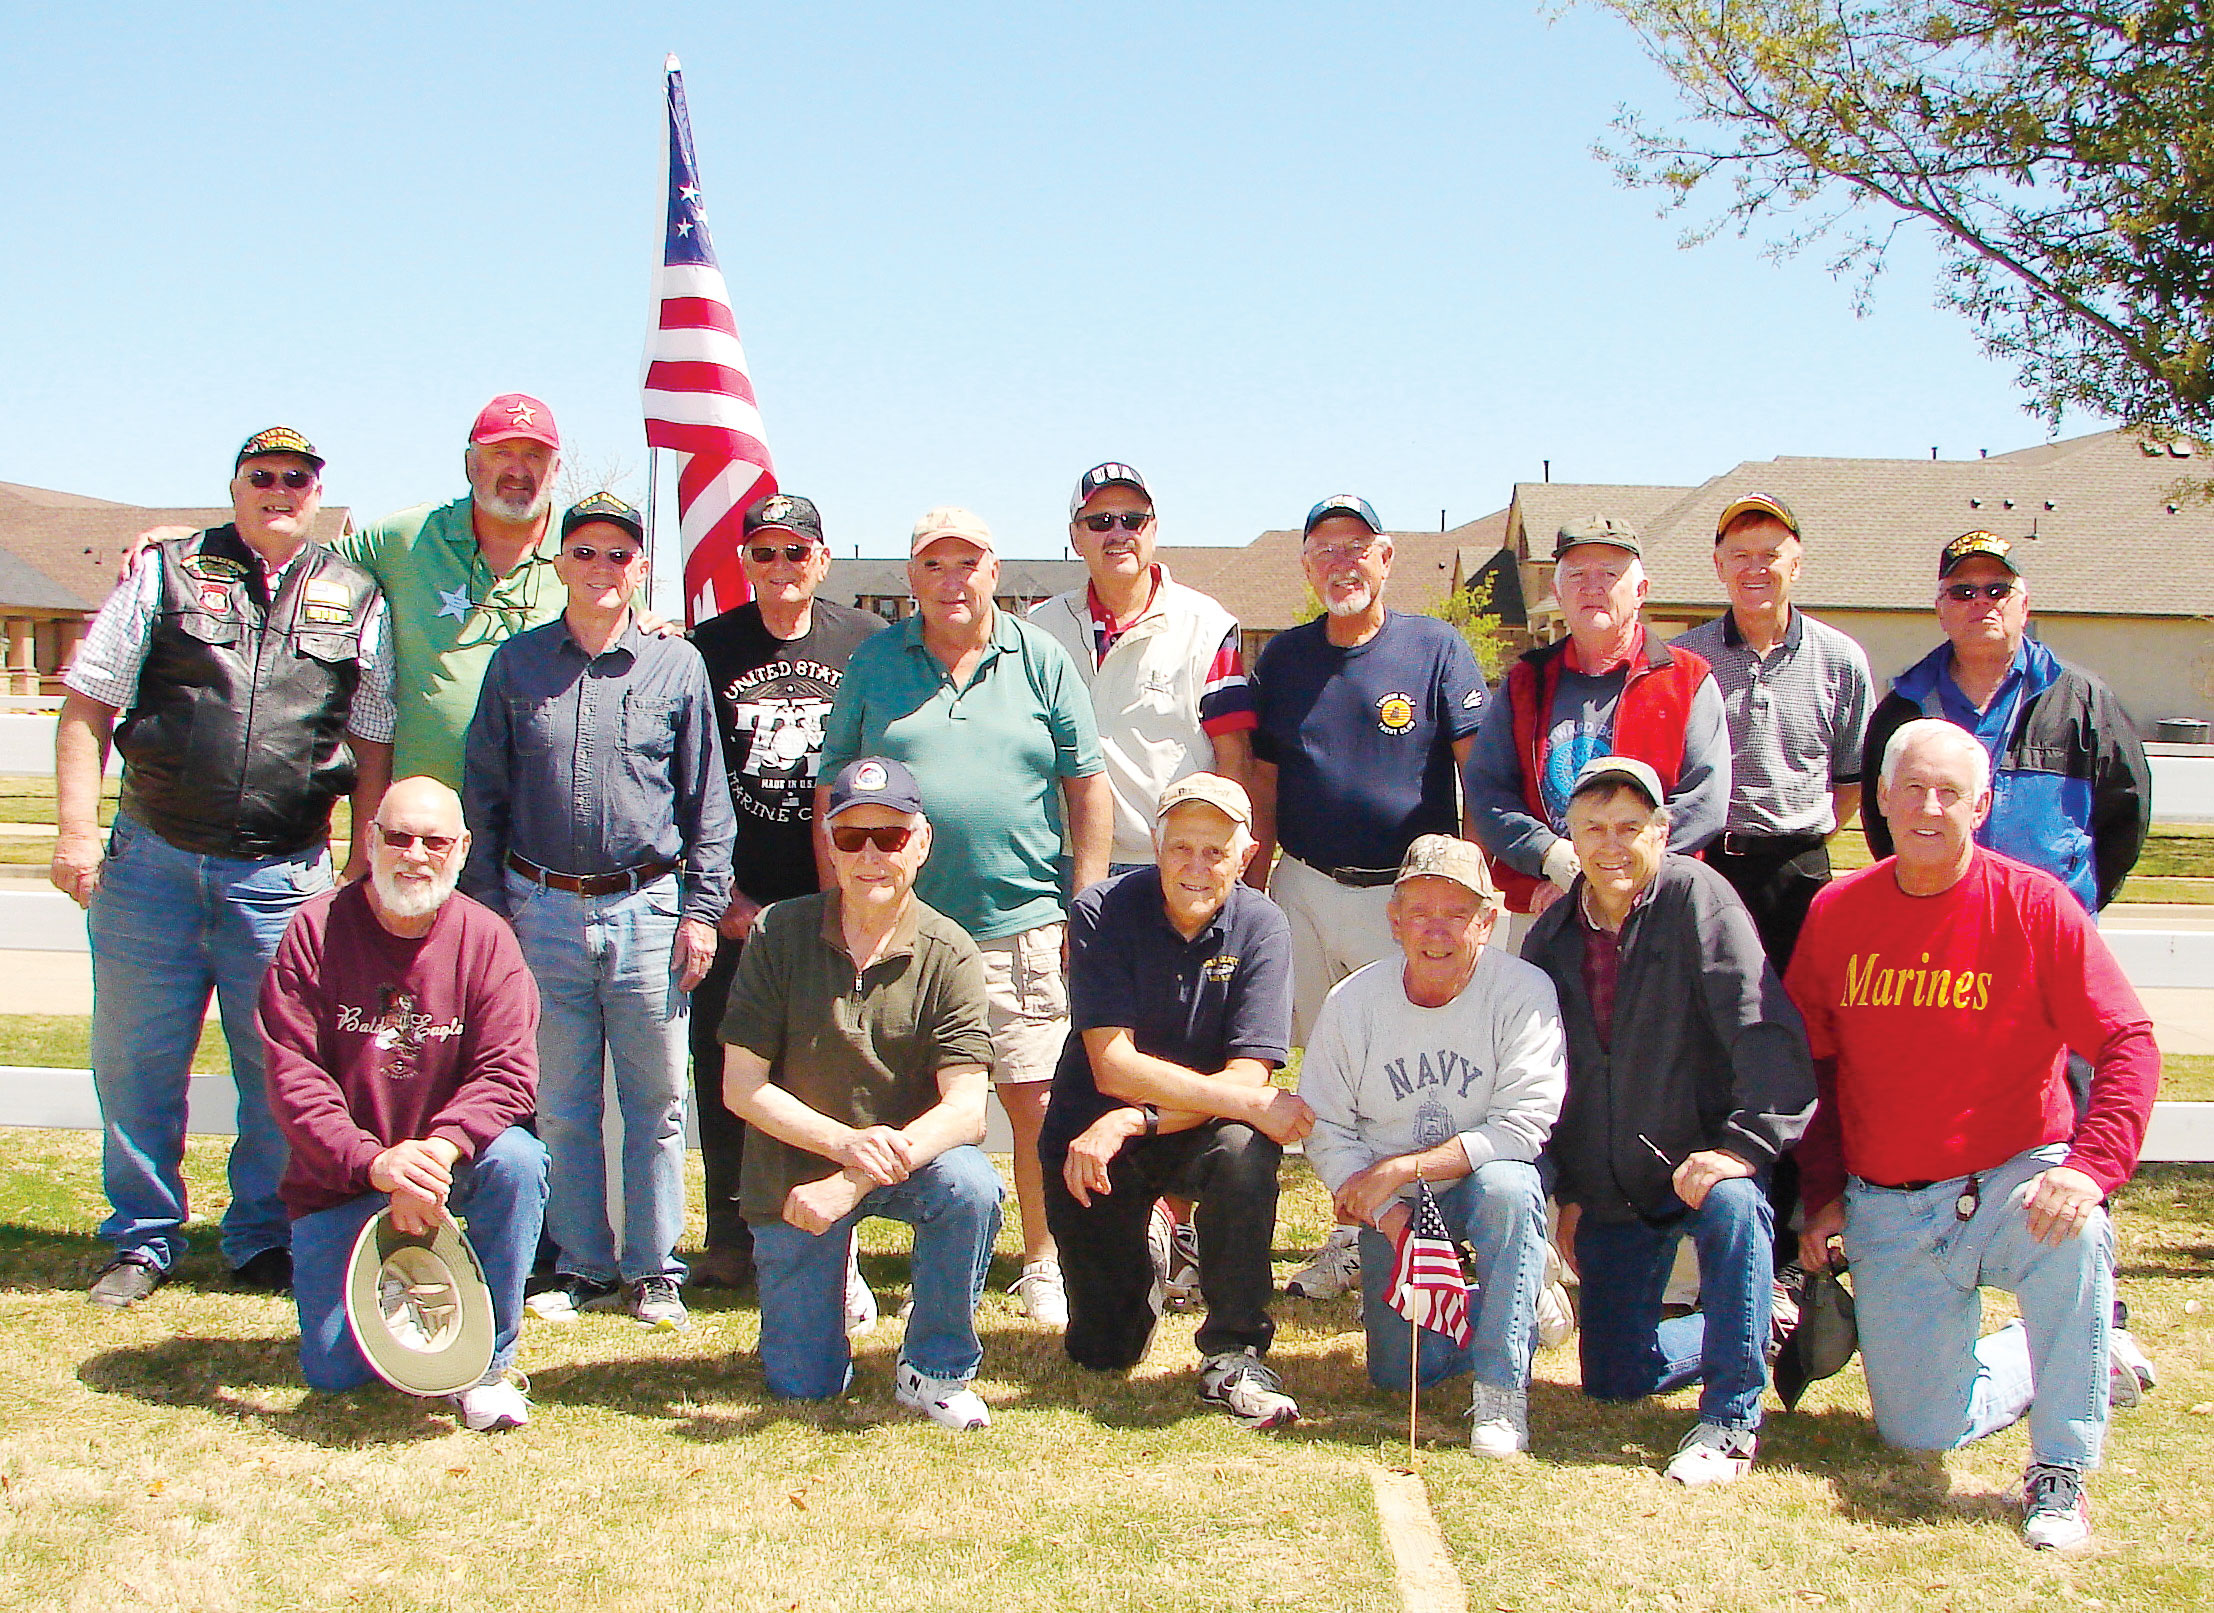 The Robson Ranch horseshoe group